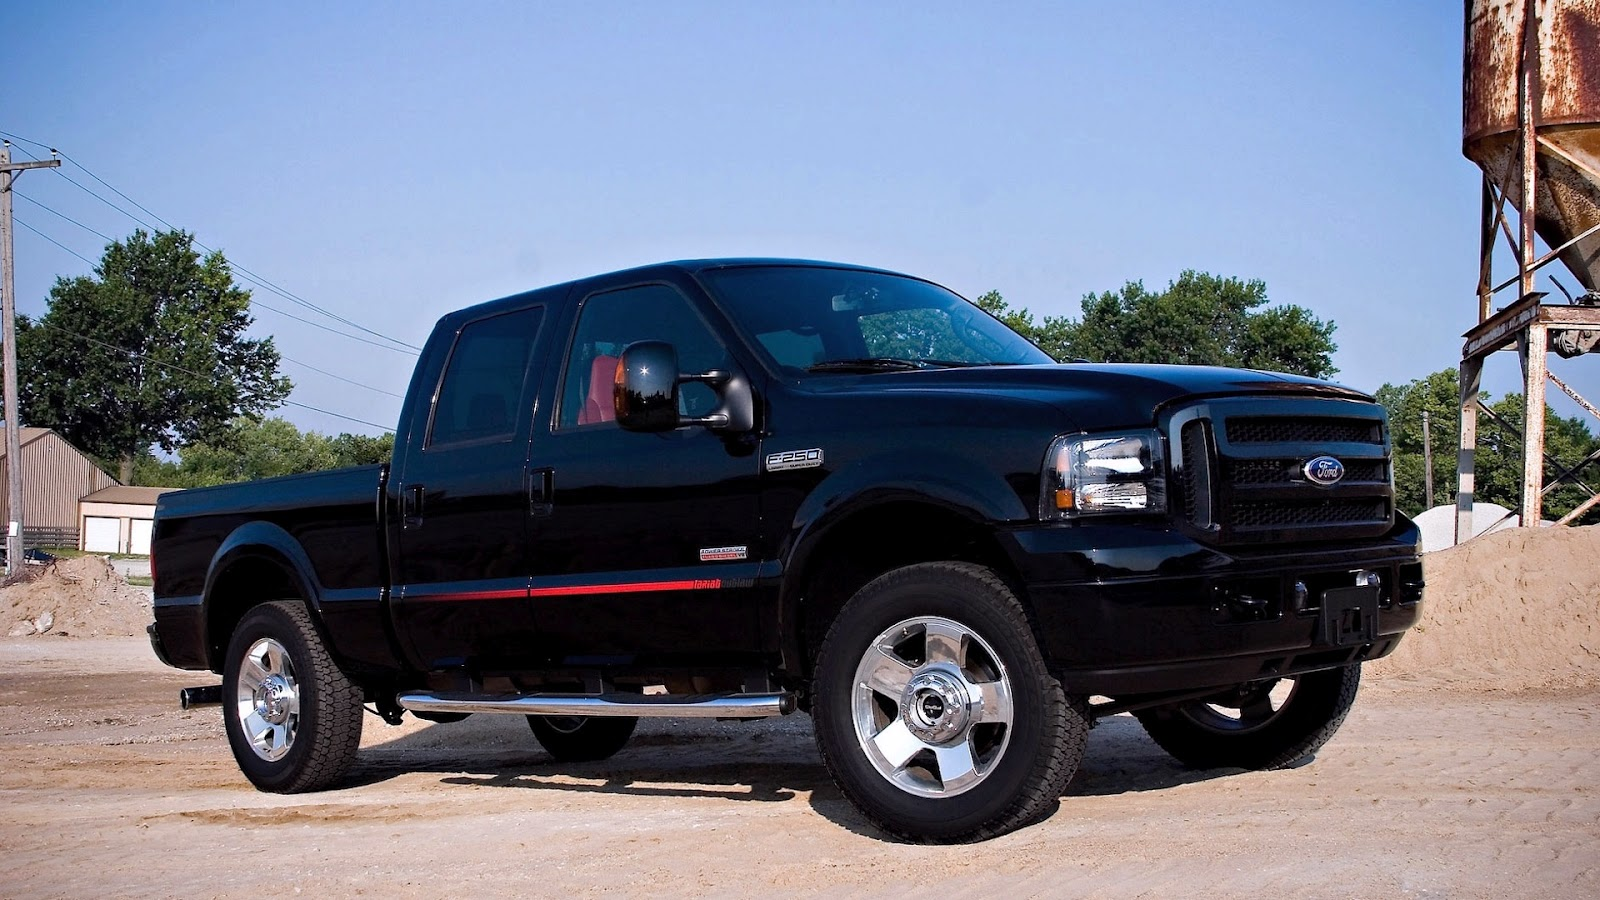 Ford F-150 Wallpapers HD